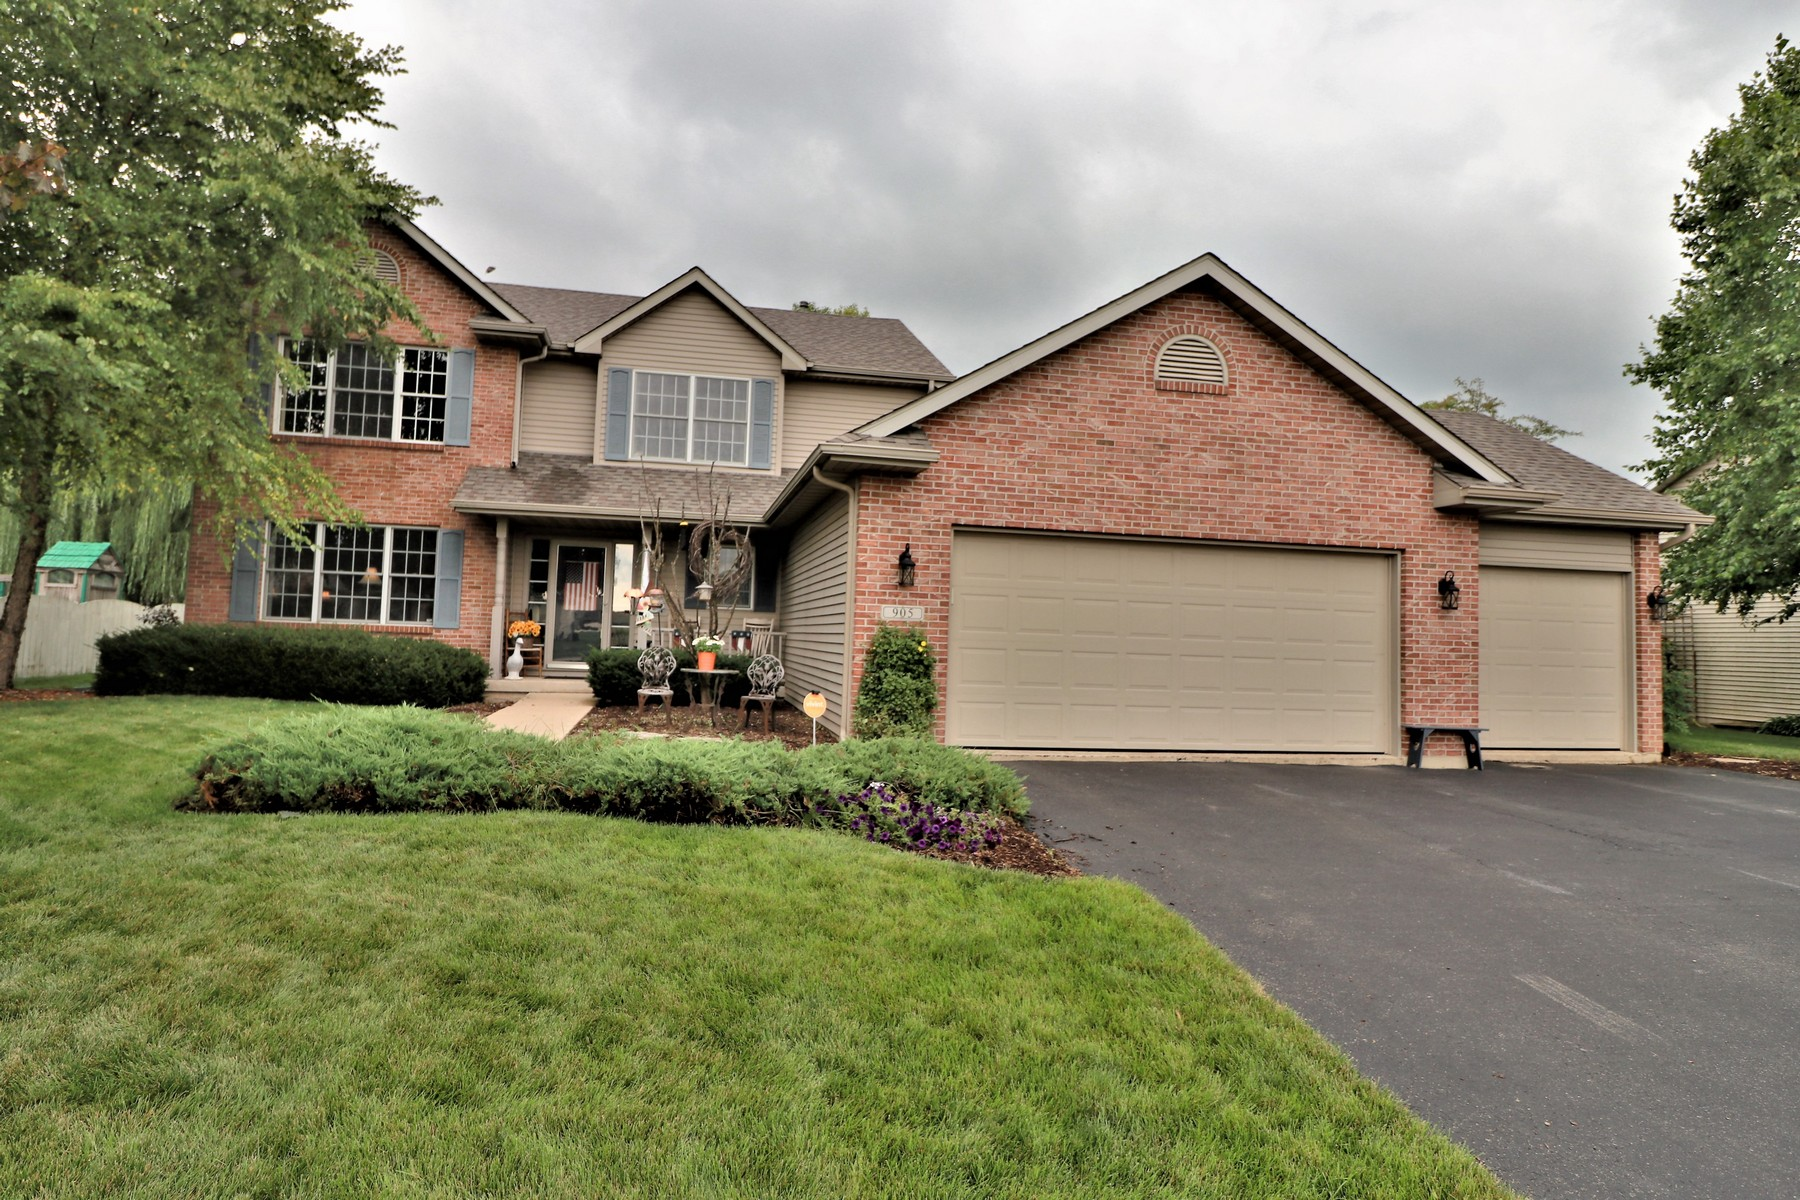 Single Family Home for Active at Stunning two story 905 Taylor Ridge Belvidere, Illinois 61008 United States